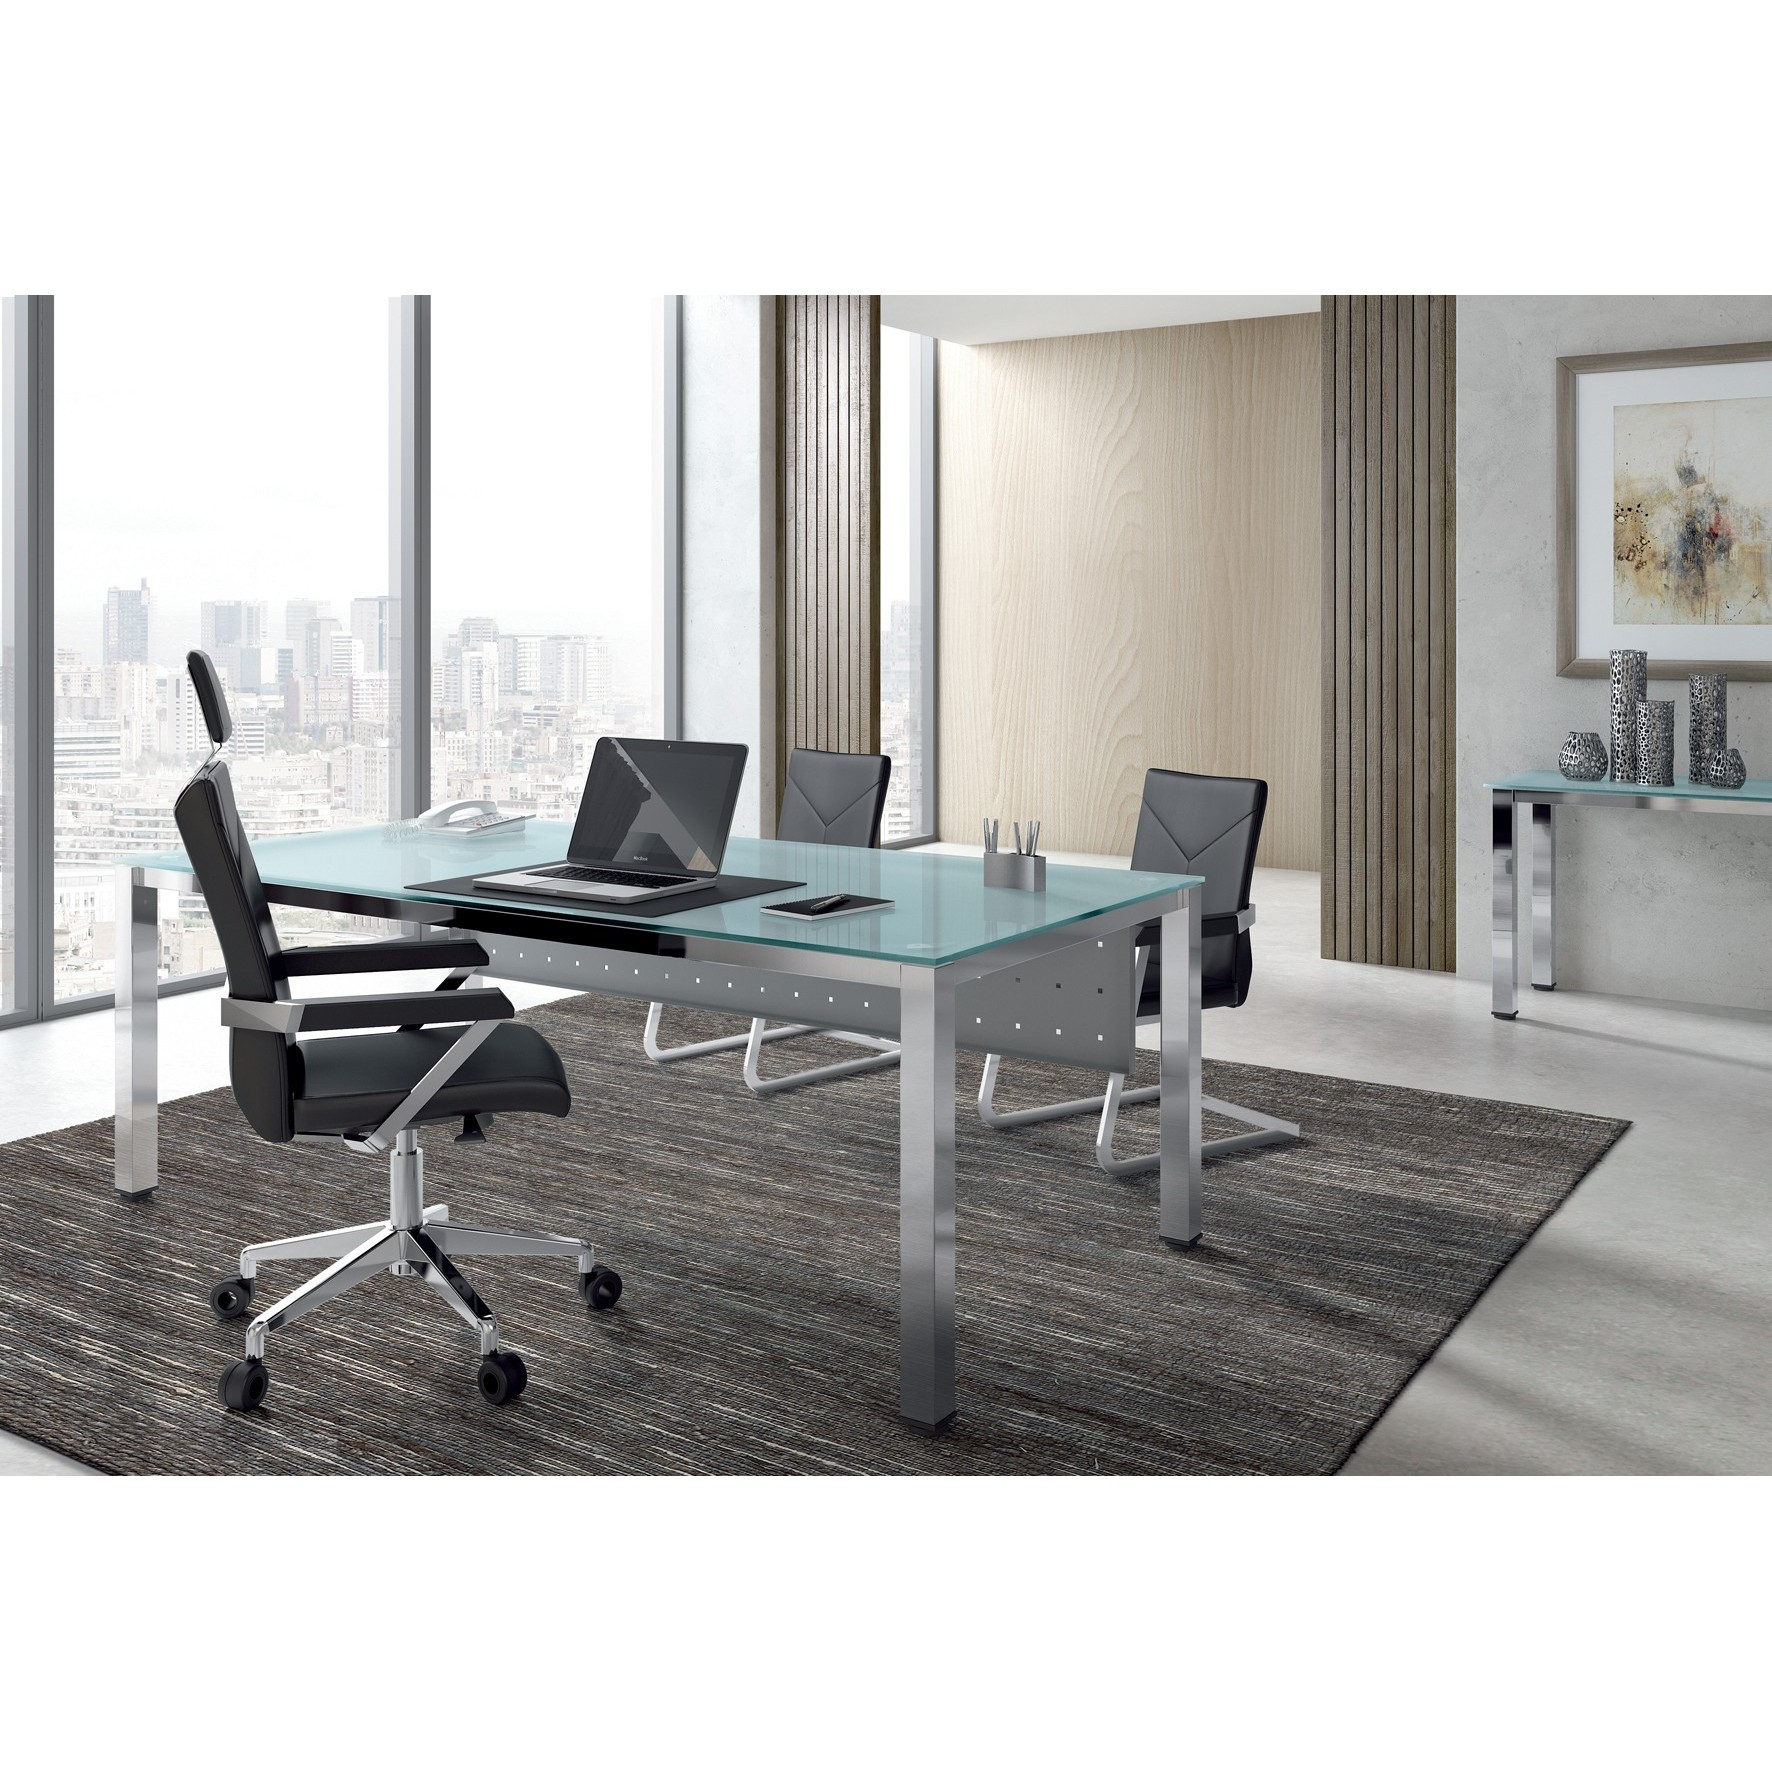 TABLE OFFICE 'S EXECUTIVE SERIES 180X80 WHITE/CRYSTAL